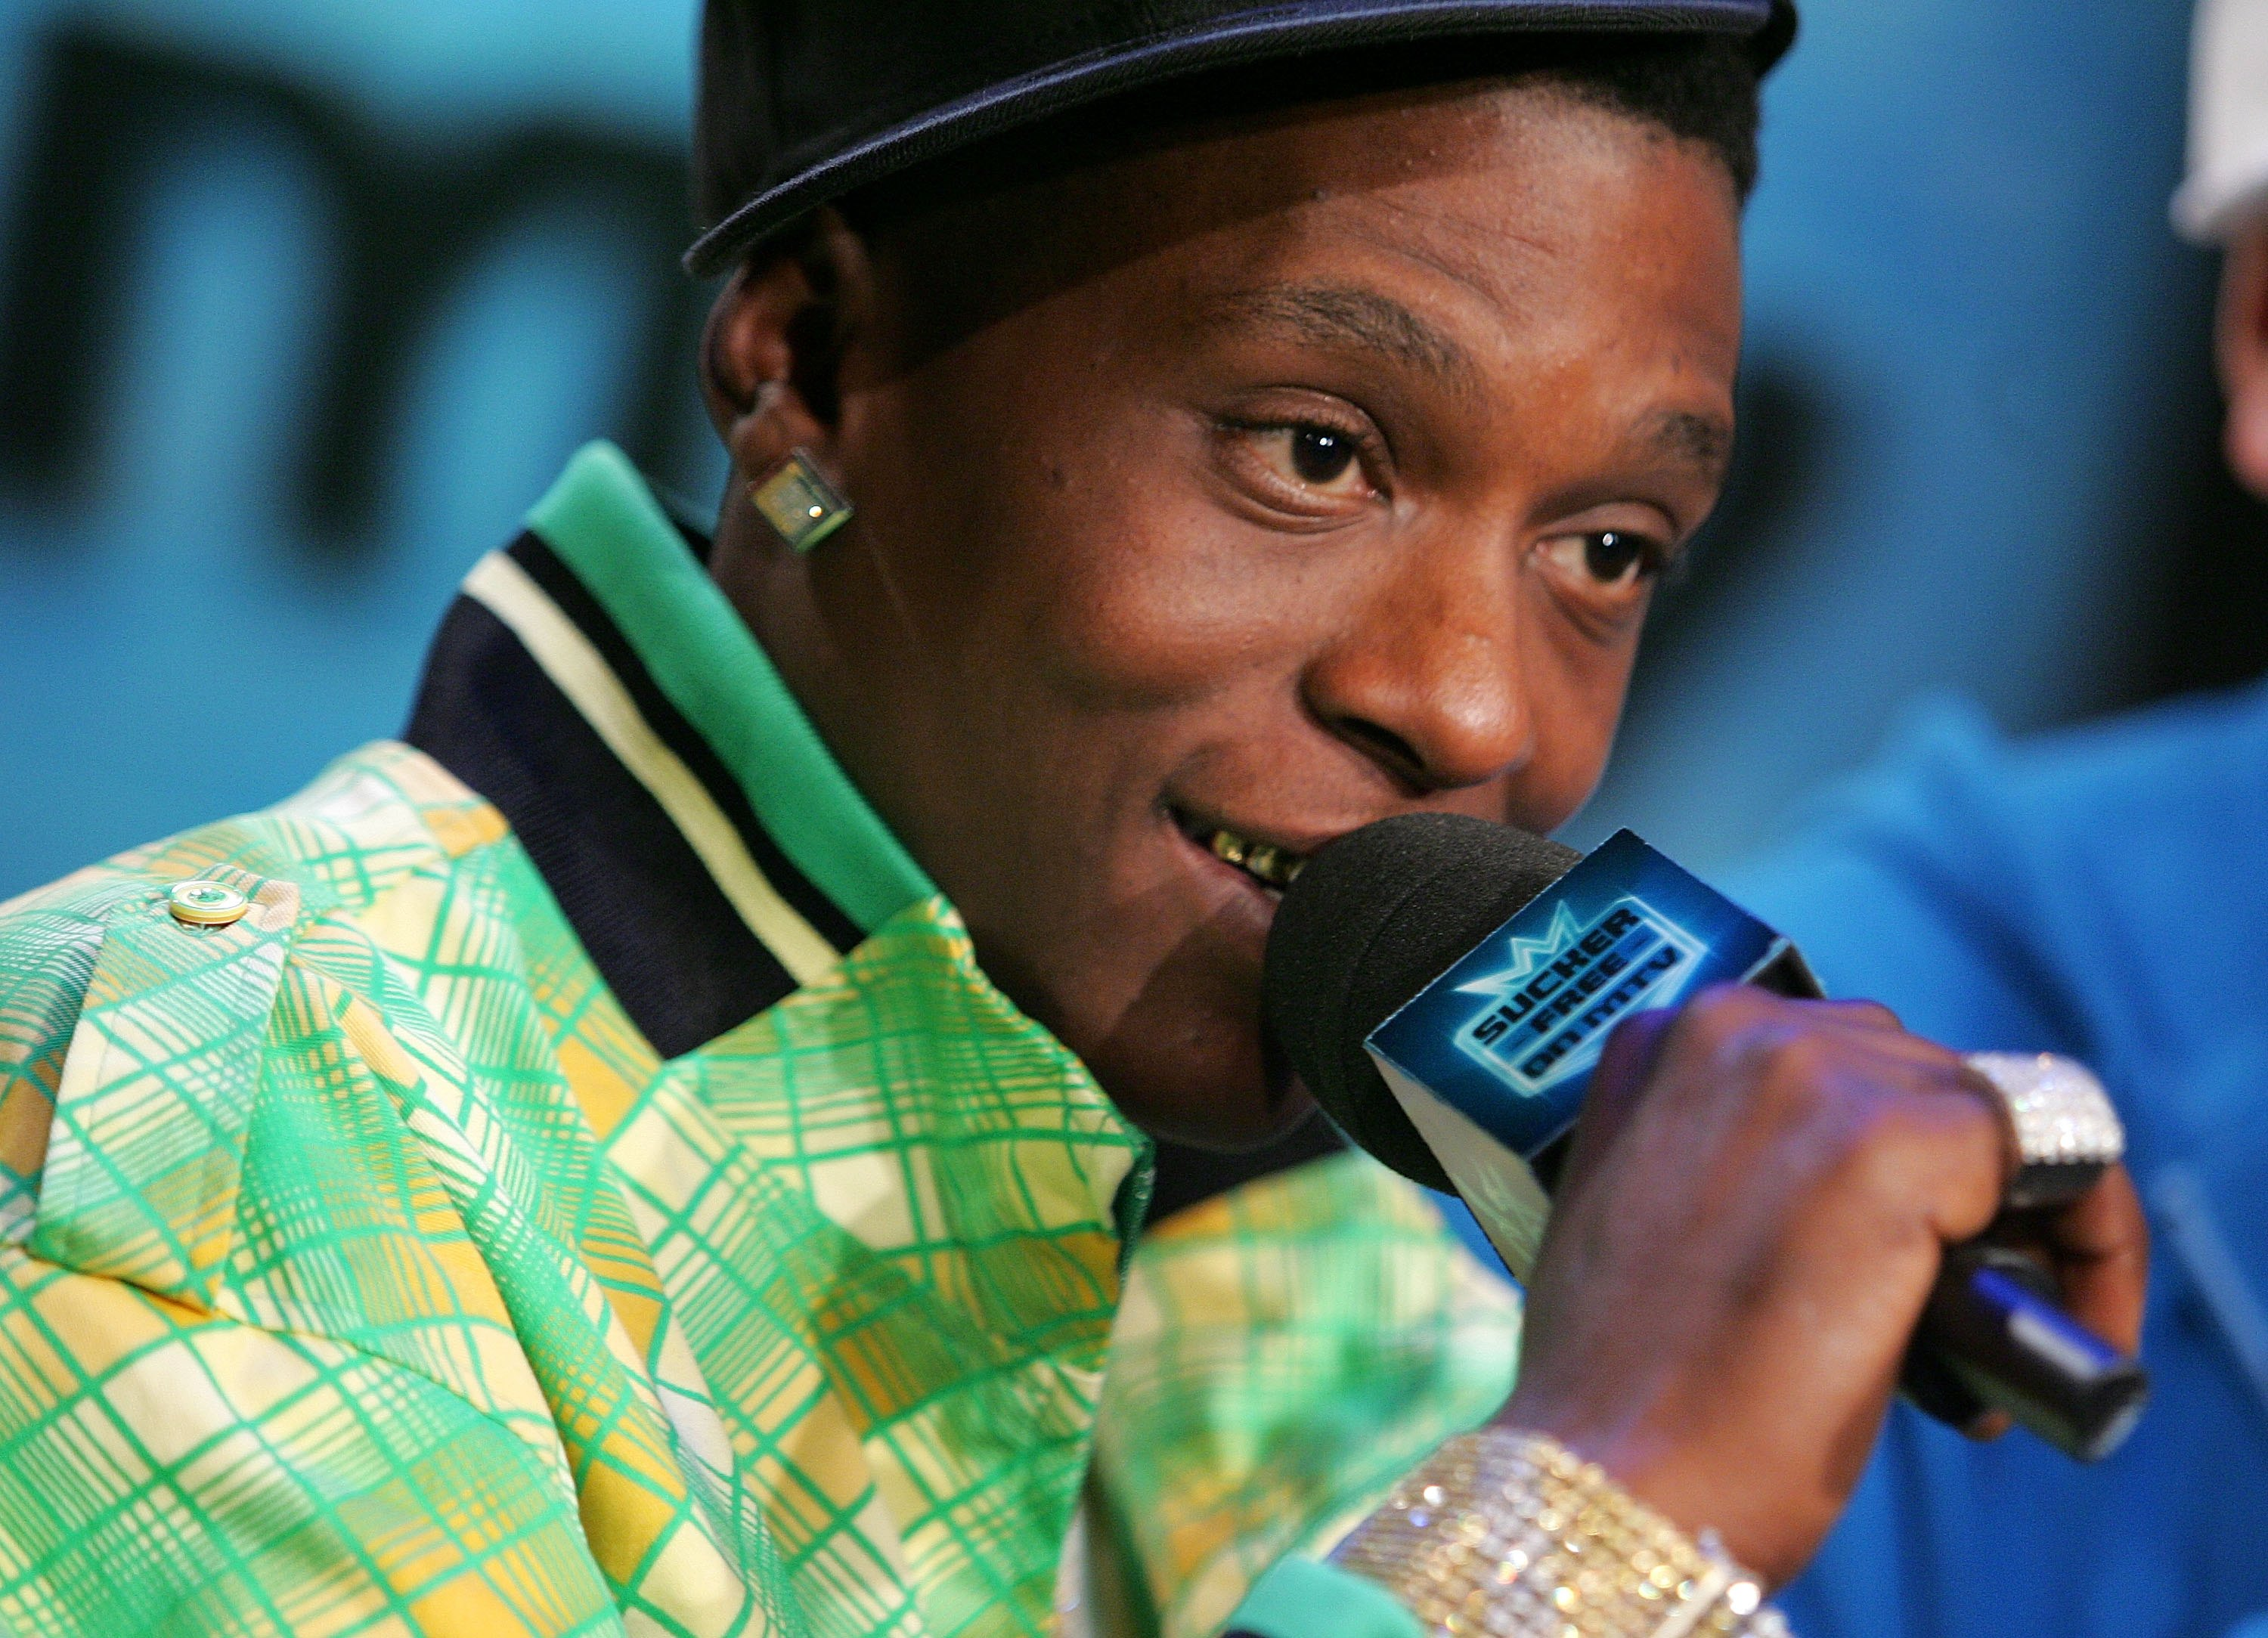 Boosie Badazz appears on MTV's Sucker Free on January 23, 2007 in New York City. (Photo by Bryan Bedder/Getty Images)